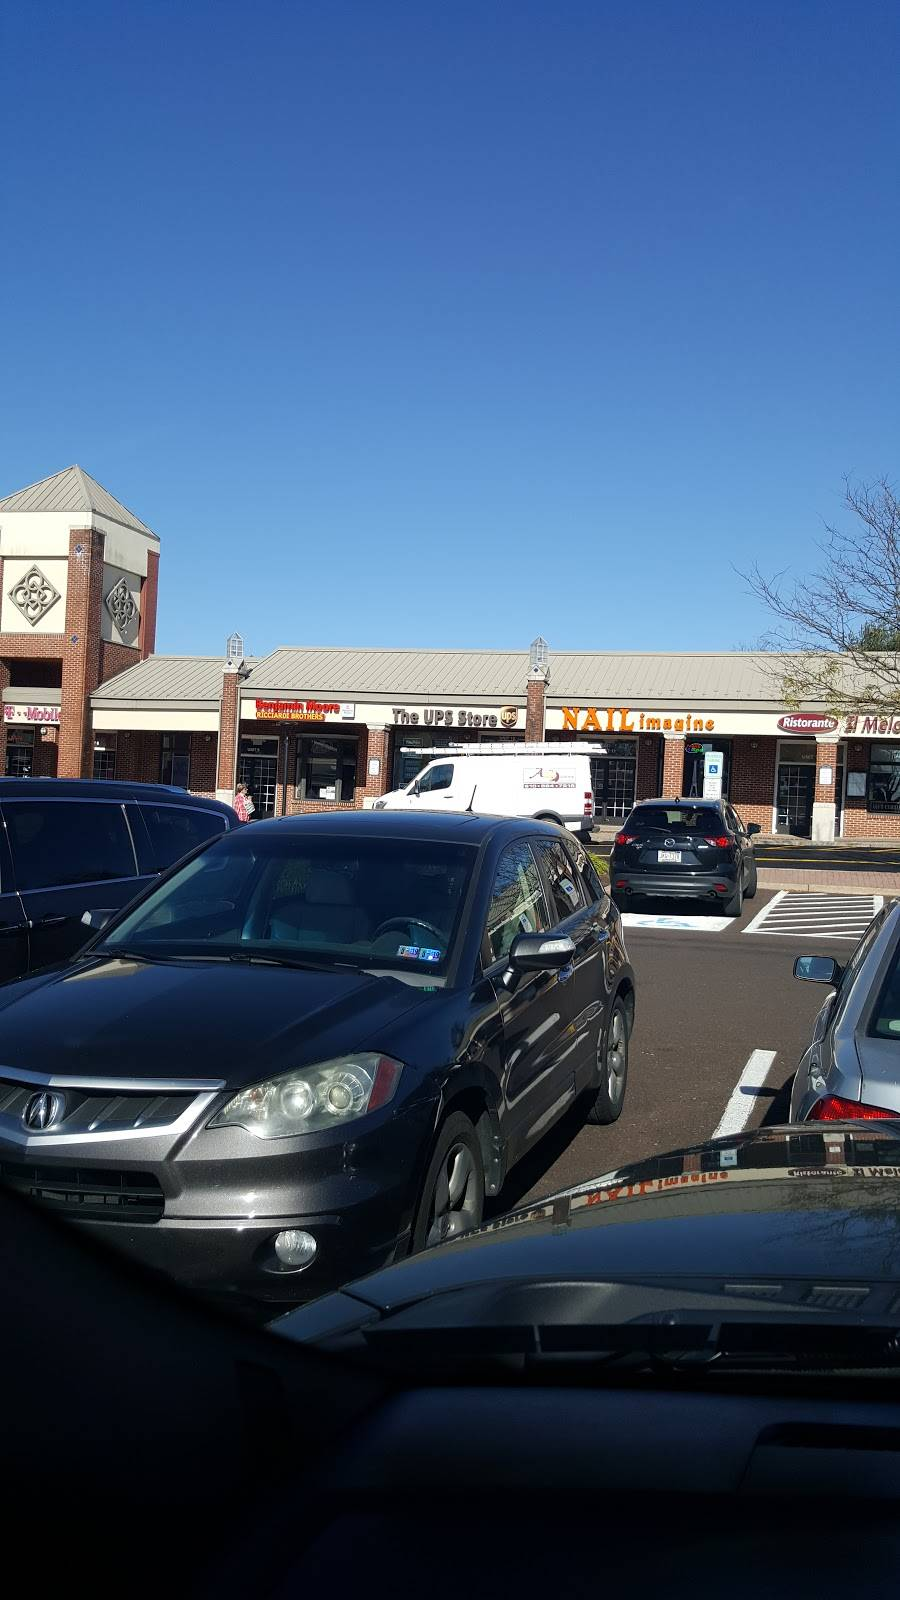 Mercer Square | shopping mall | 73 Old Dublin Pike, Doylestown, PA 18901, USA | 6107471200 OR +1 610-747-1200